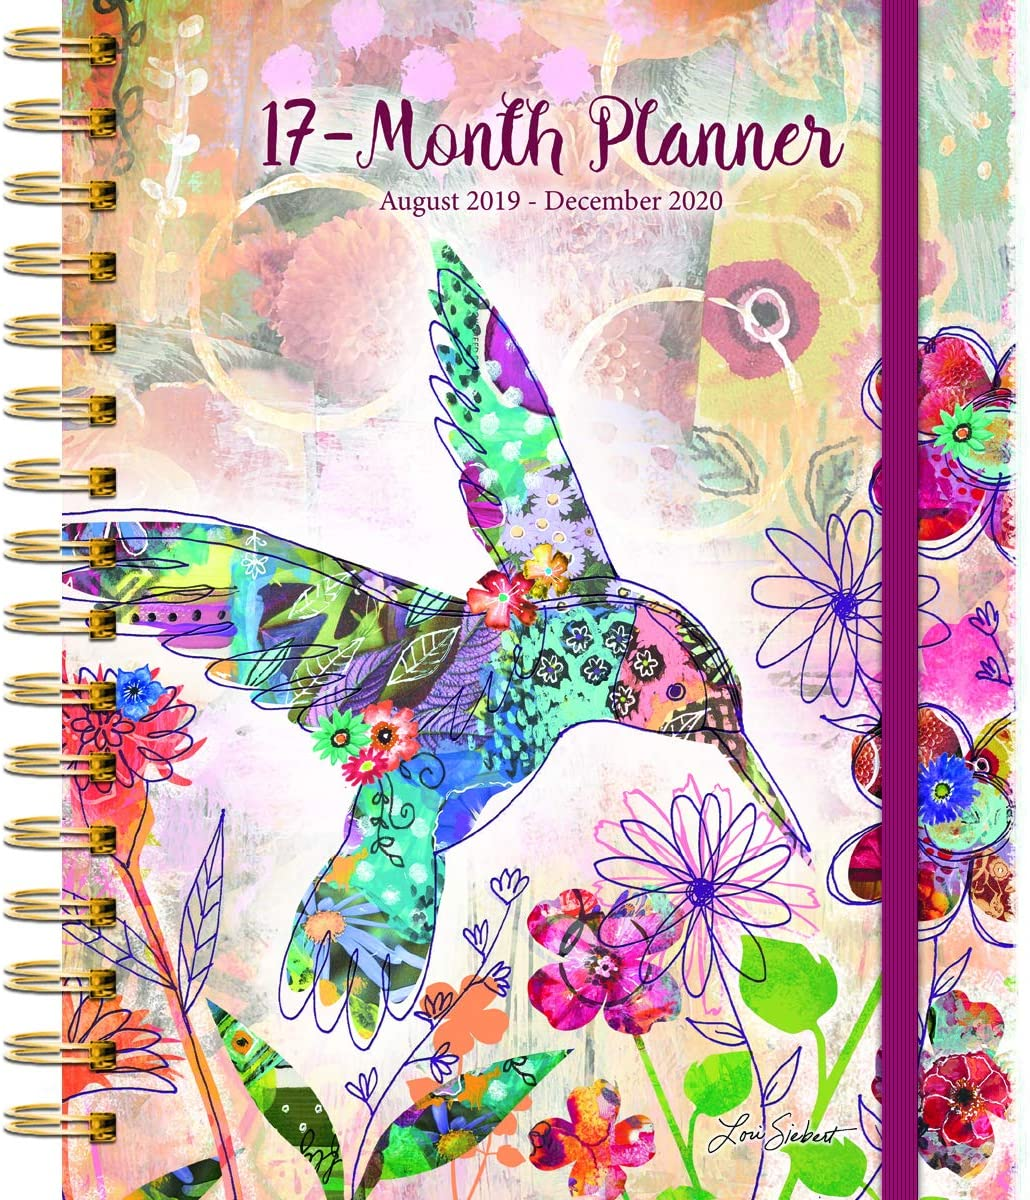 Wells Street by LANG WSBL Fanciful Flight 2020 Plan-It Planner (20997081004) Personal Organizer (20997081004)